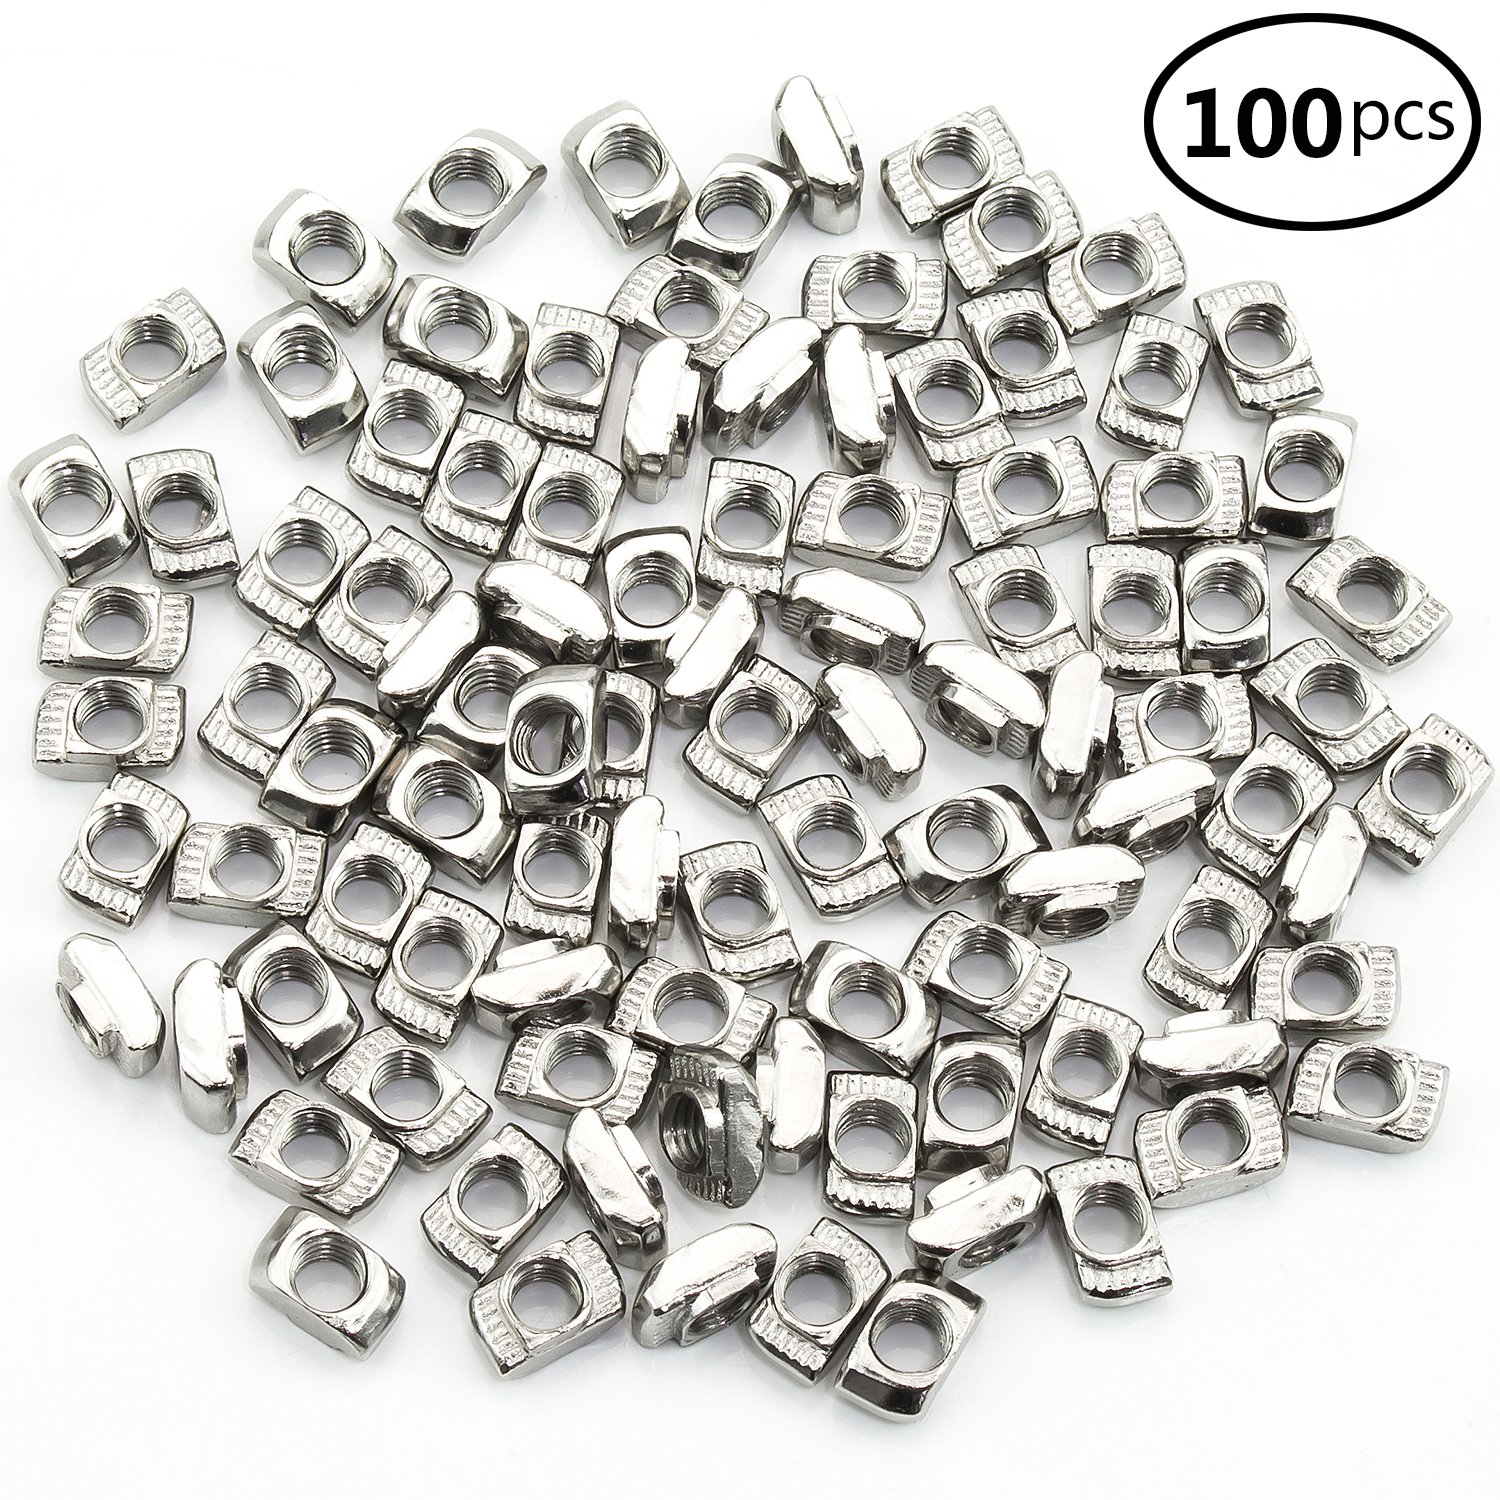 Sutemribor 2020 Series 100 Pcs M5 T-Nuts,Carbon Steel Nickel-Plated Half Round Roll in Sliding T Slot Nut 6mm Slot Aluminum Profile Accessories STBR-T-luomu---50P M5